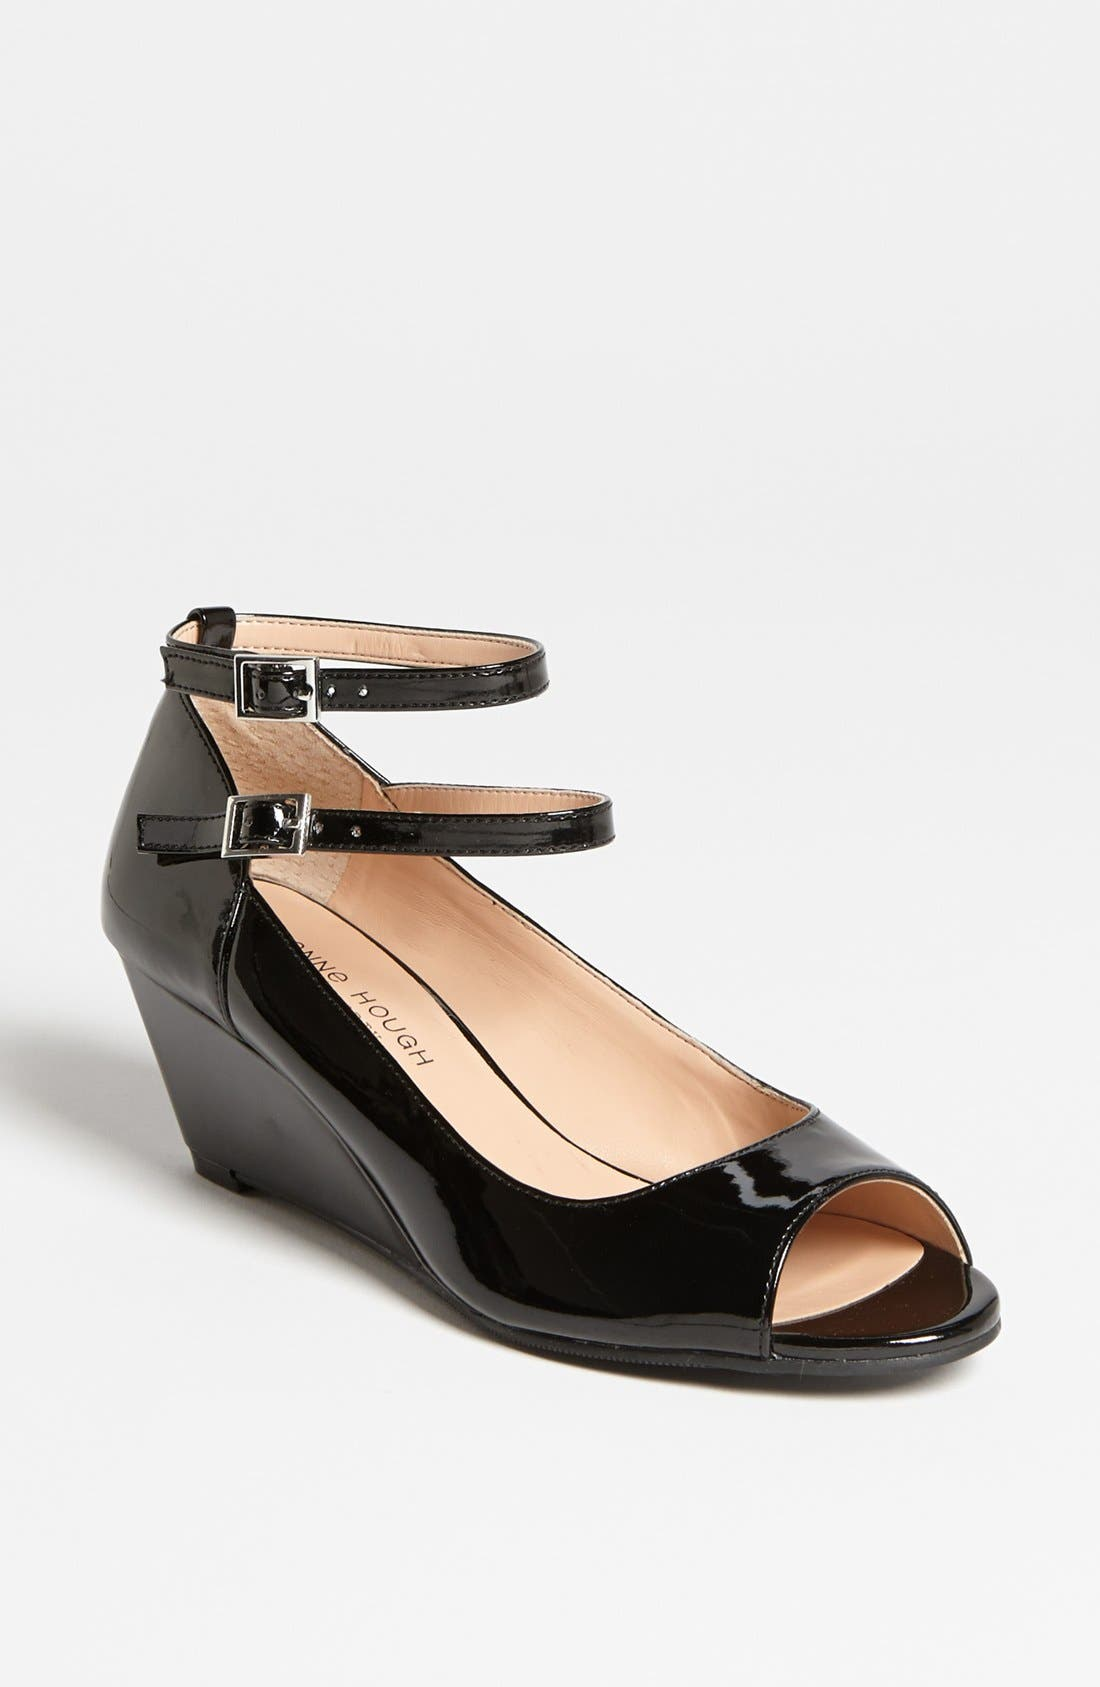 Main Image - Julianne Hough for Sole Society 'Selina' Wedge